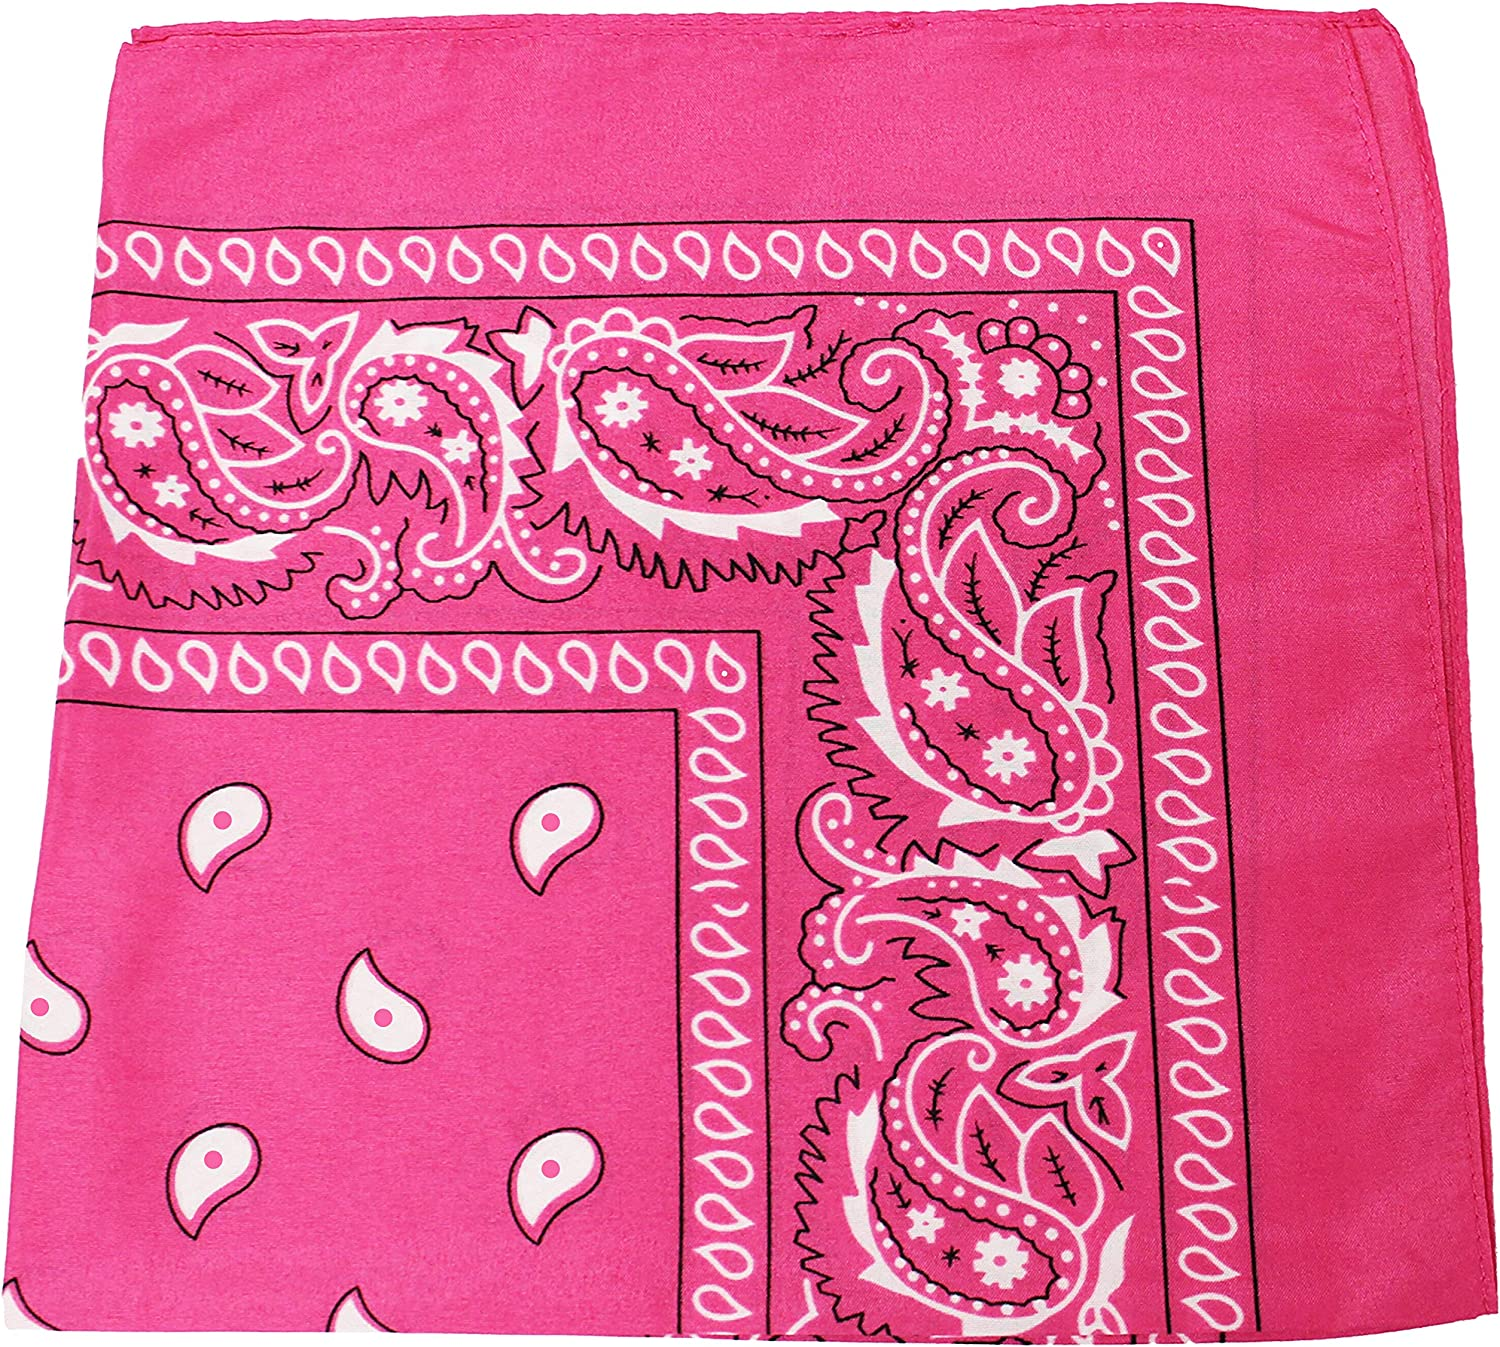 Challenge the lowest price Mechaly Paisley 100% Polyester Unisex - New product Pack Bandanas 12 Dozen